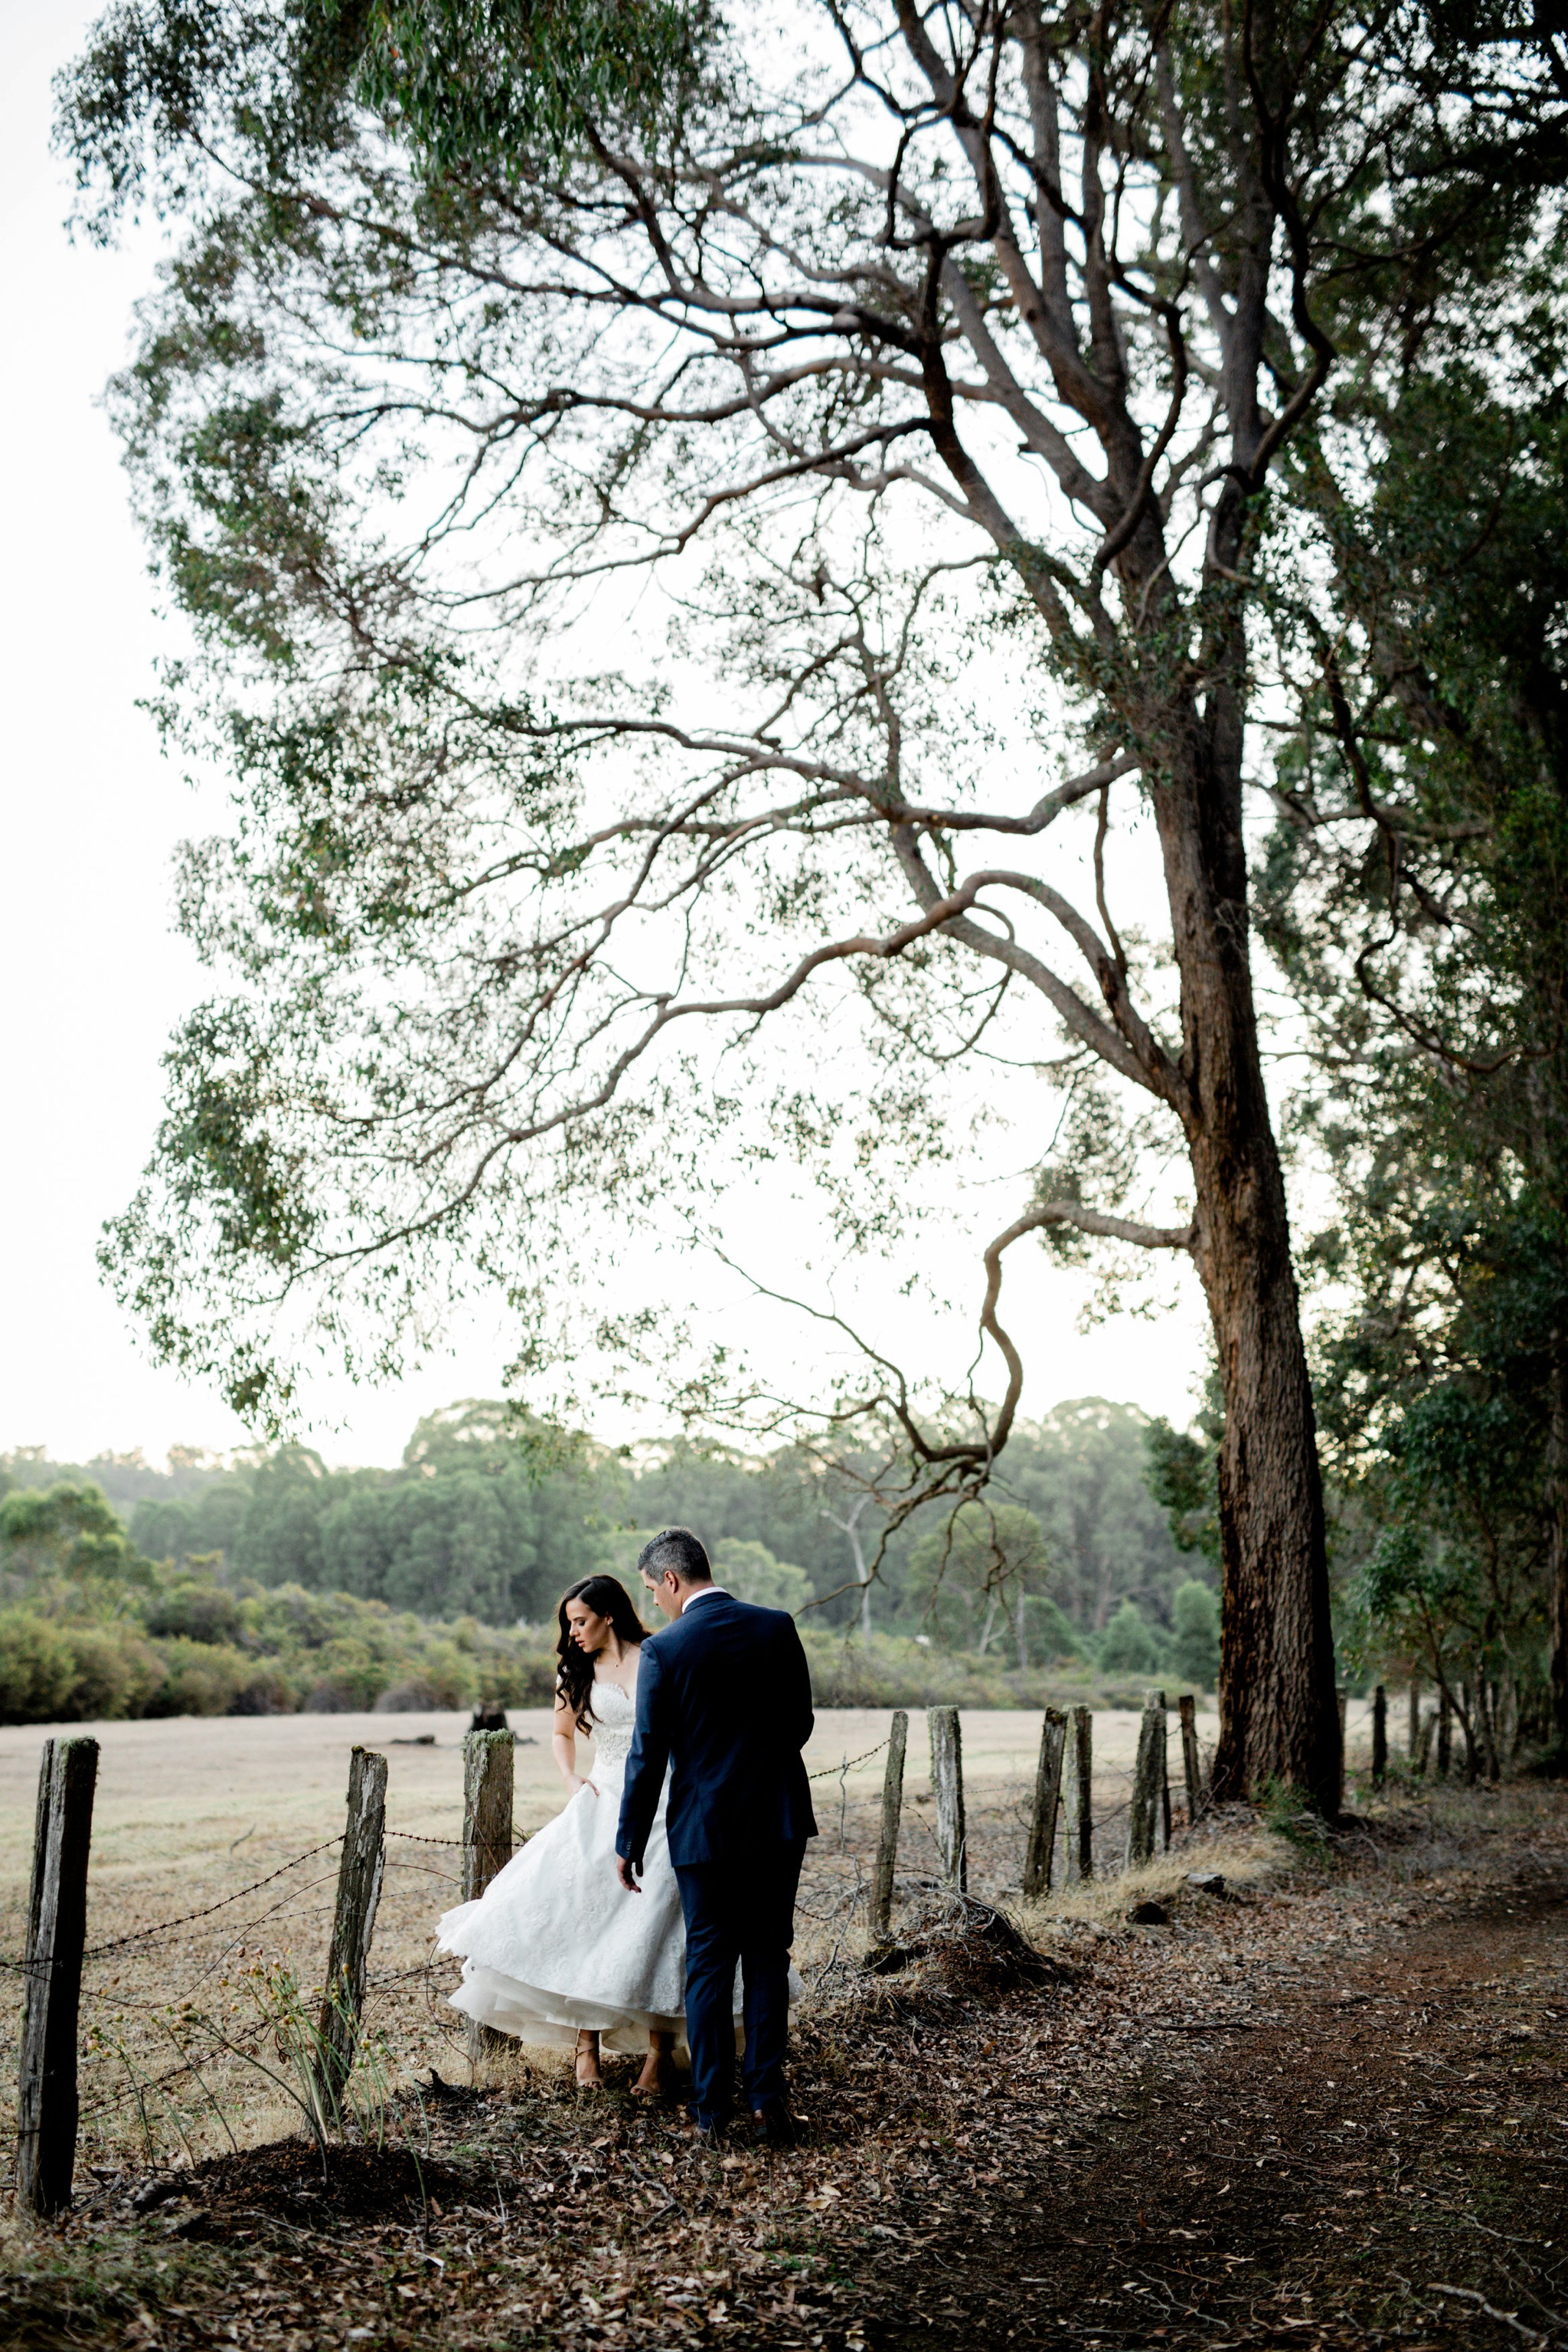 PERTH-WEDDING-PHOTOGRAPHER.JPG